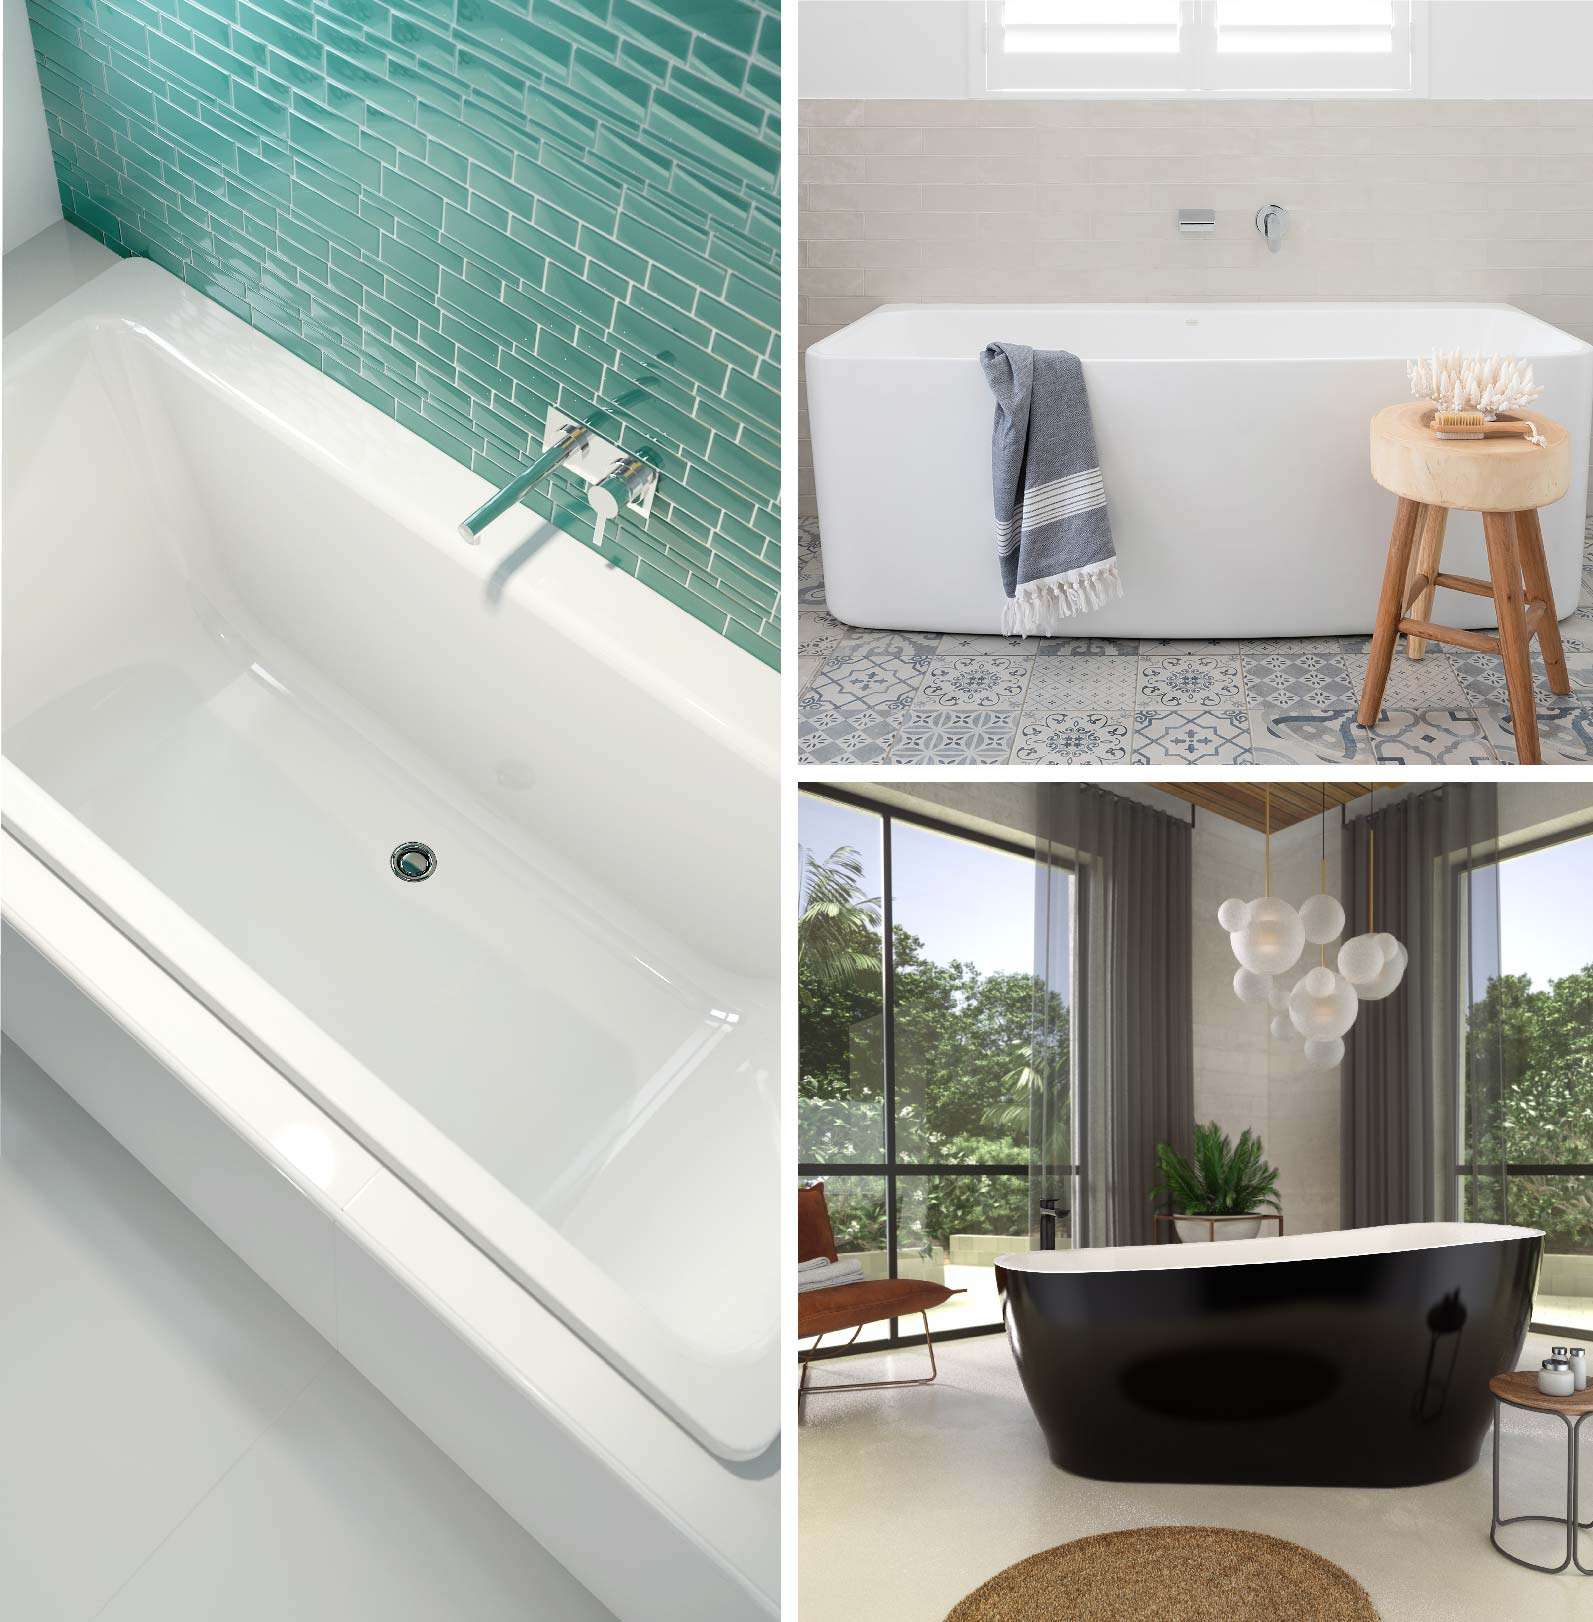 How to choose the right bath for your sanctuary